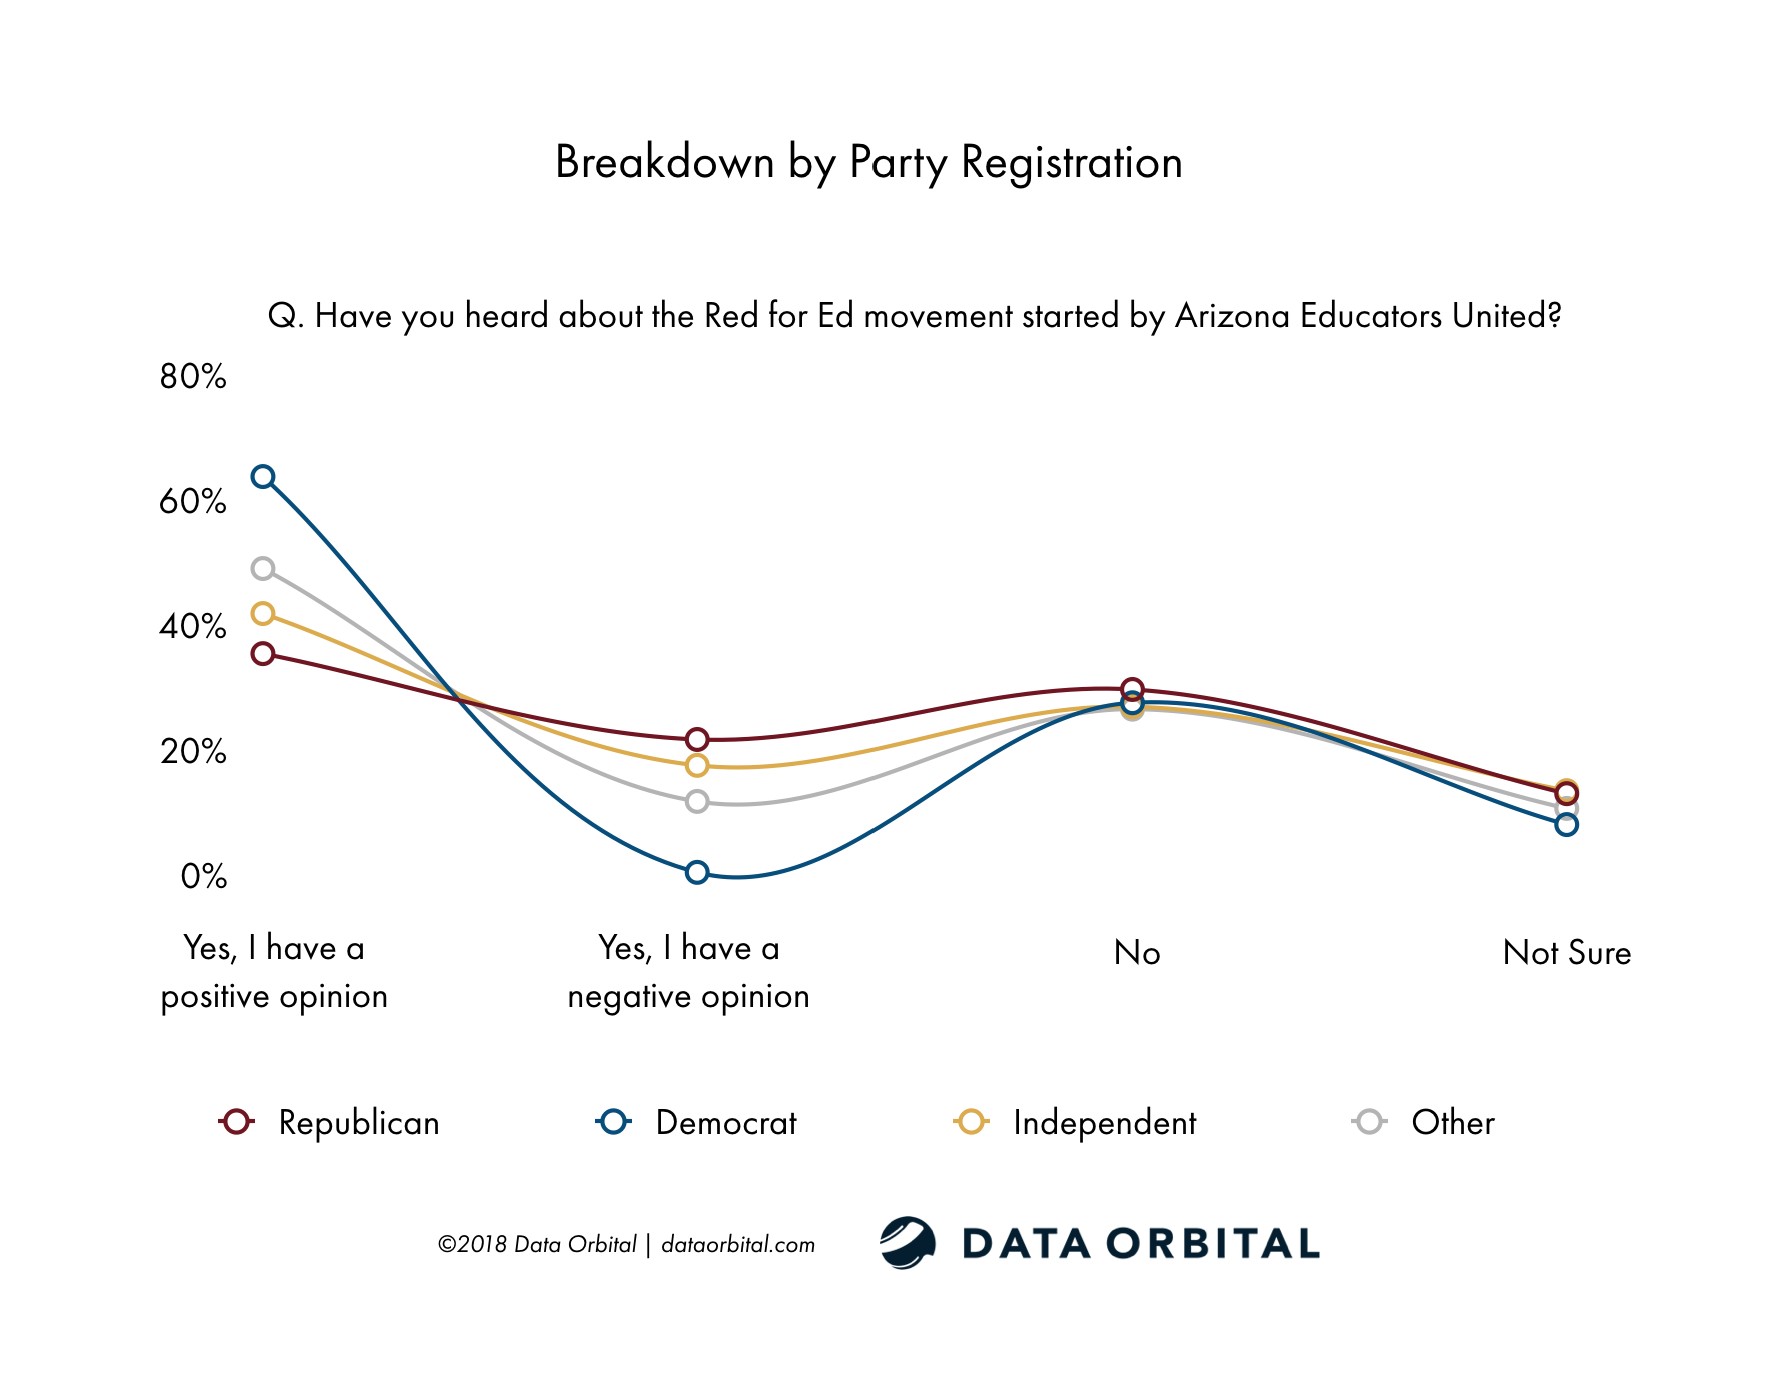 Data Orbital AZ Statewide Poll Have you heard about the Red for Ed movement started by Arizona Educators United? Breakdown by Party Registration